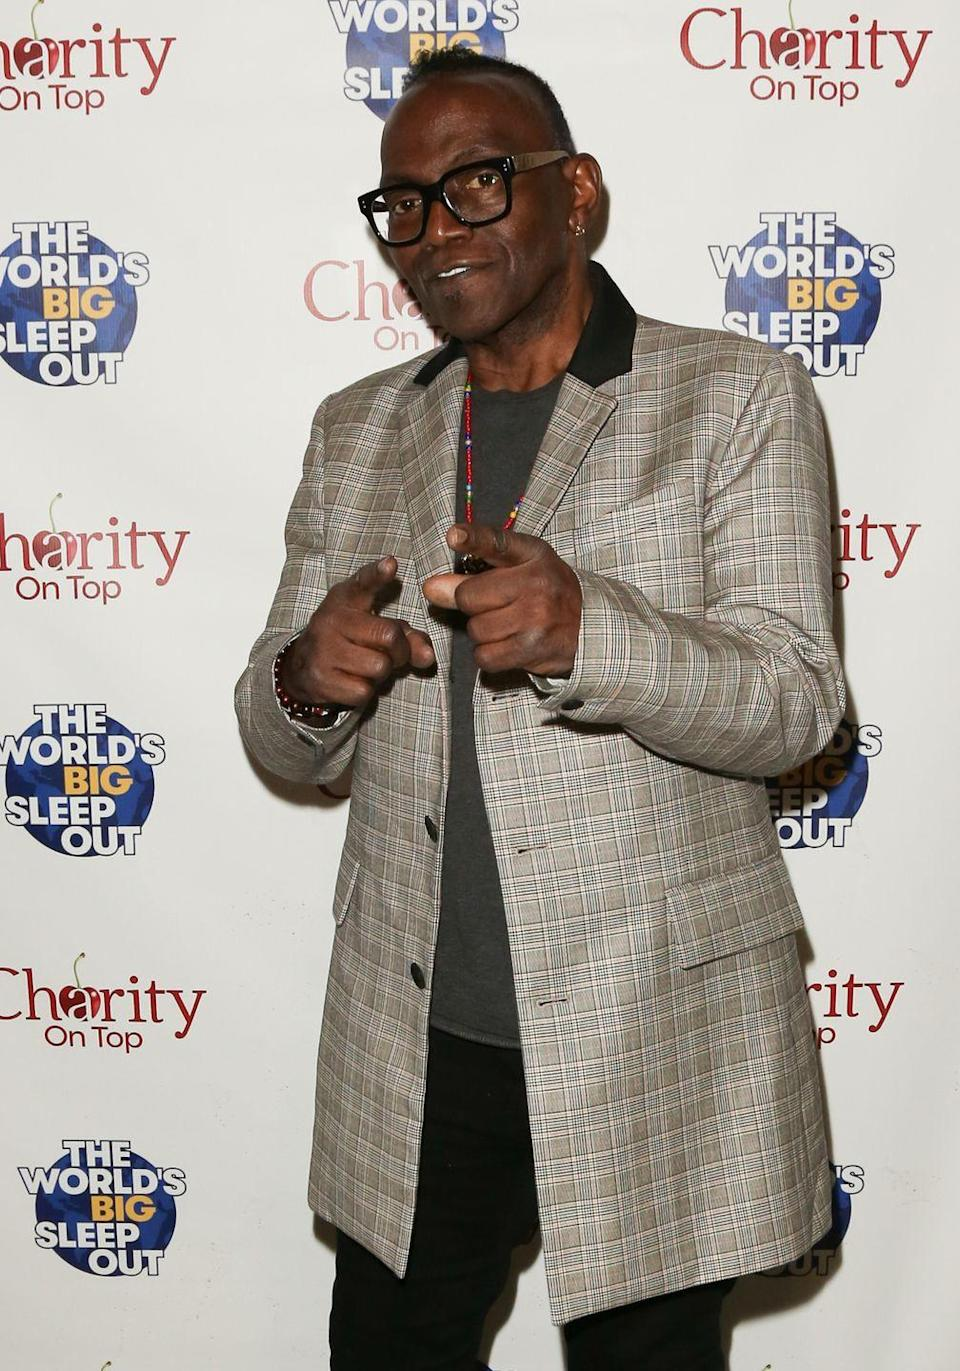 """<p>Determined to control his diabetes, Randy Jackson got gastric bypass surgery in 2003 which <a href=""""https://www.prevention.com/weight-loss/a30688108/randy-jackson-weight-loss-transformation/"""" rel=""""nofollow noopener"""" target=""""_blank"""" data-ylk=""""slk:helped him lose 100 pounds"""" class=""""link rapid-noclick-resp"""">helped him lose 100 pounds</a>. Since then, per <a href=""""https://www.webmd.com/diet/obesity/features/how-randy-jackson-lost-100-pounds"""" rel=""""nofollow noopener"""" target=""""_blank"""" data-ylk=""""slk:WebMD"""" class=""""link rapid-noclick-resp""""><em>WebMD</em></a>, he has found a few methods for maintaining the weight loss like paying more attention to hunger cues, creating healthy recipes for foods he loves, and walking on a treadmill at home every day. </p>"""